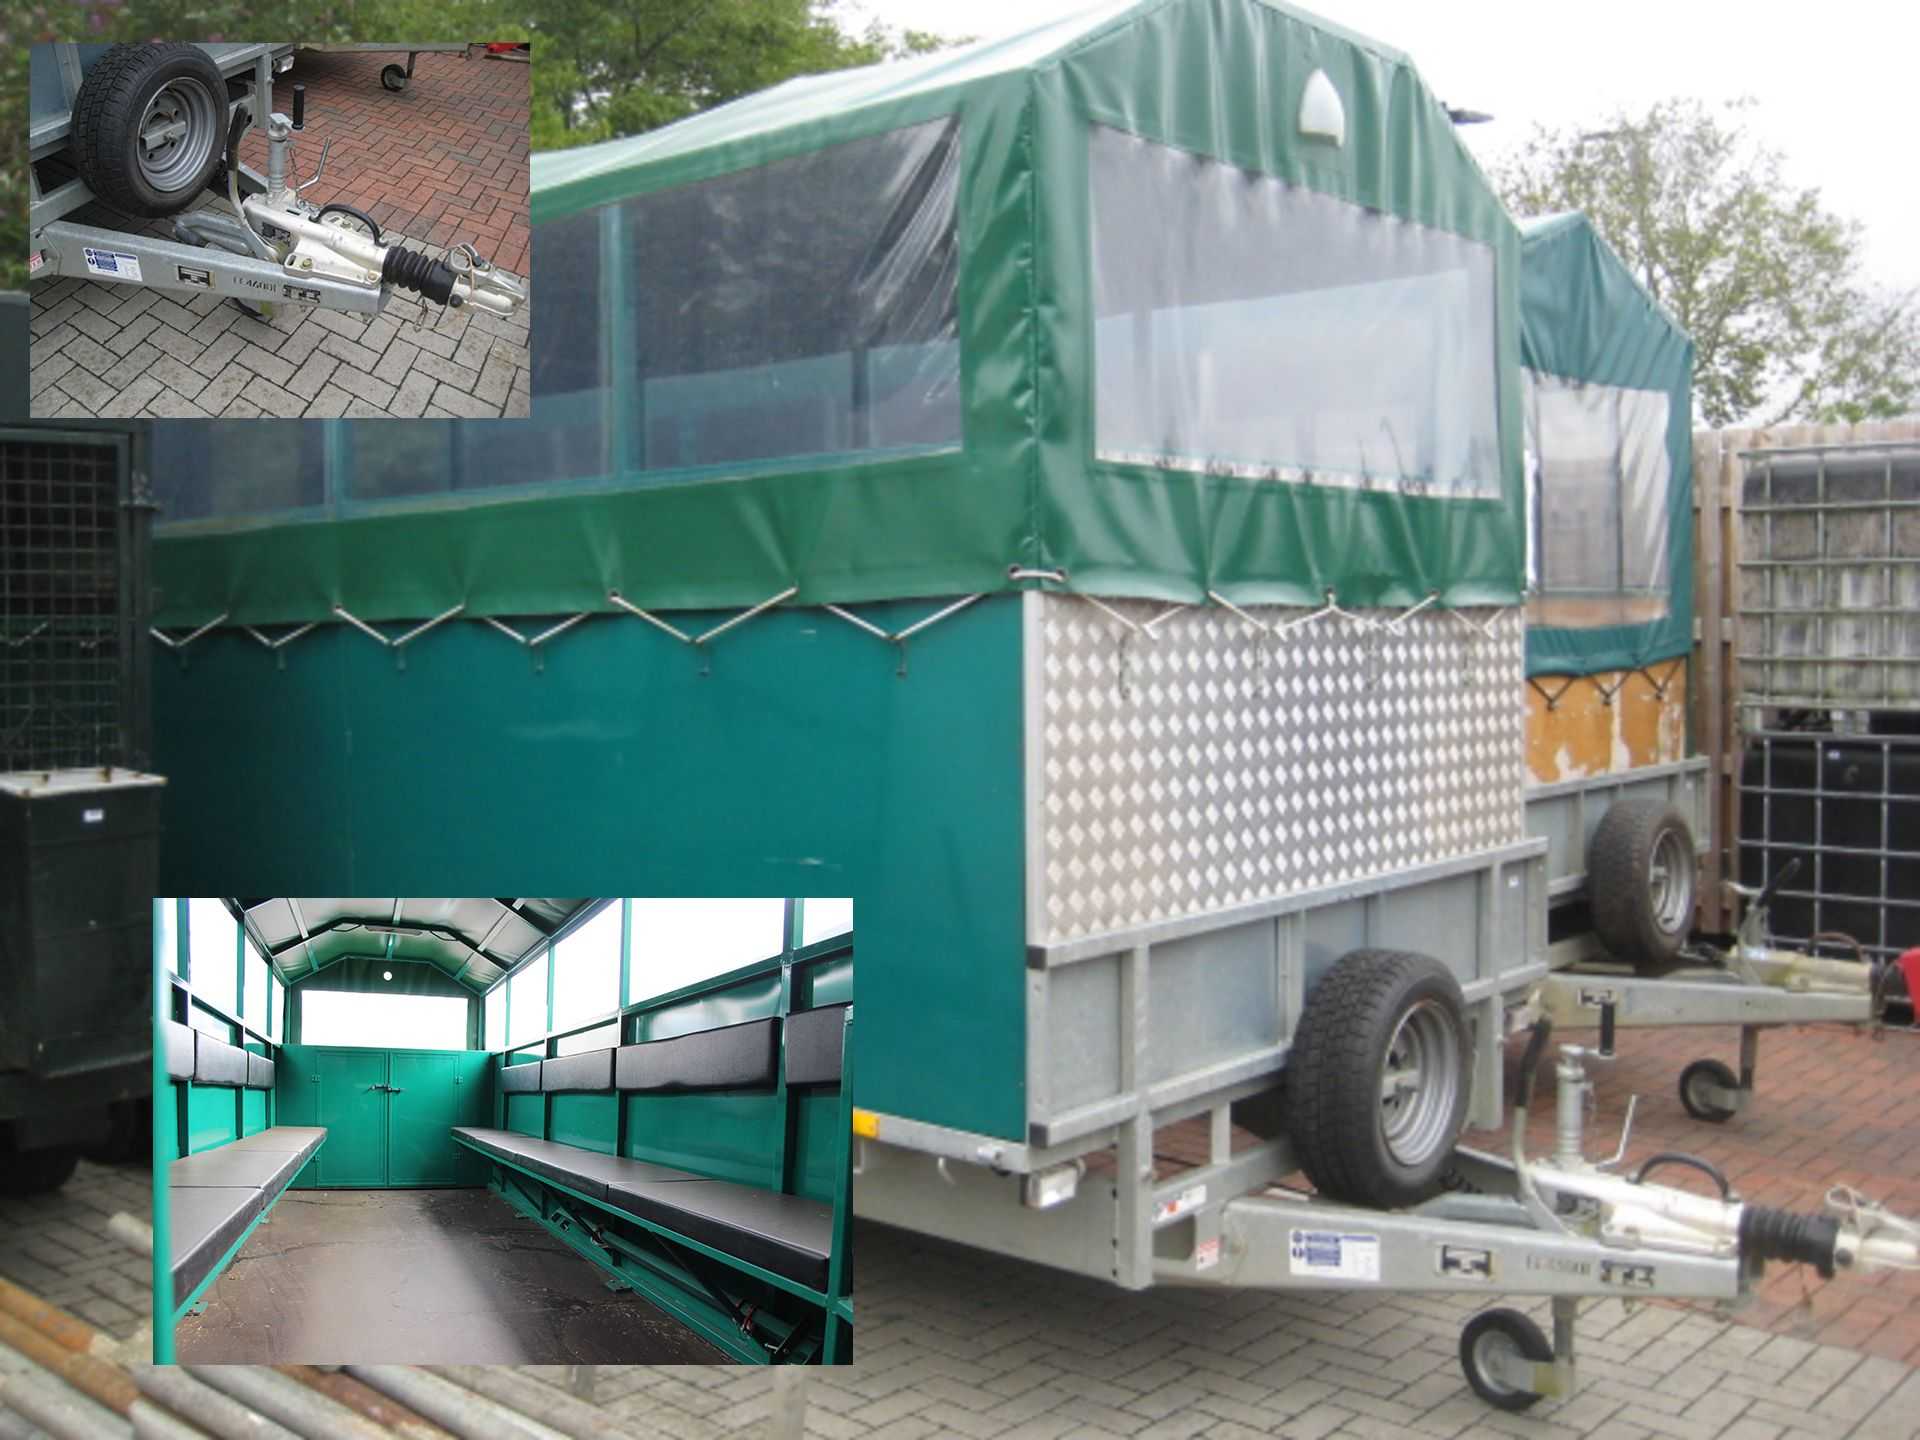 Lot 4121 - Ifor Williams LM186 tri-axle 'Gun Bus' hospitality trailer, converted by Cunningham, interior with